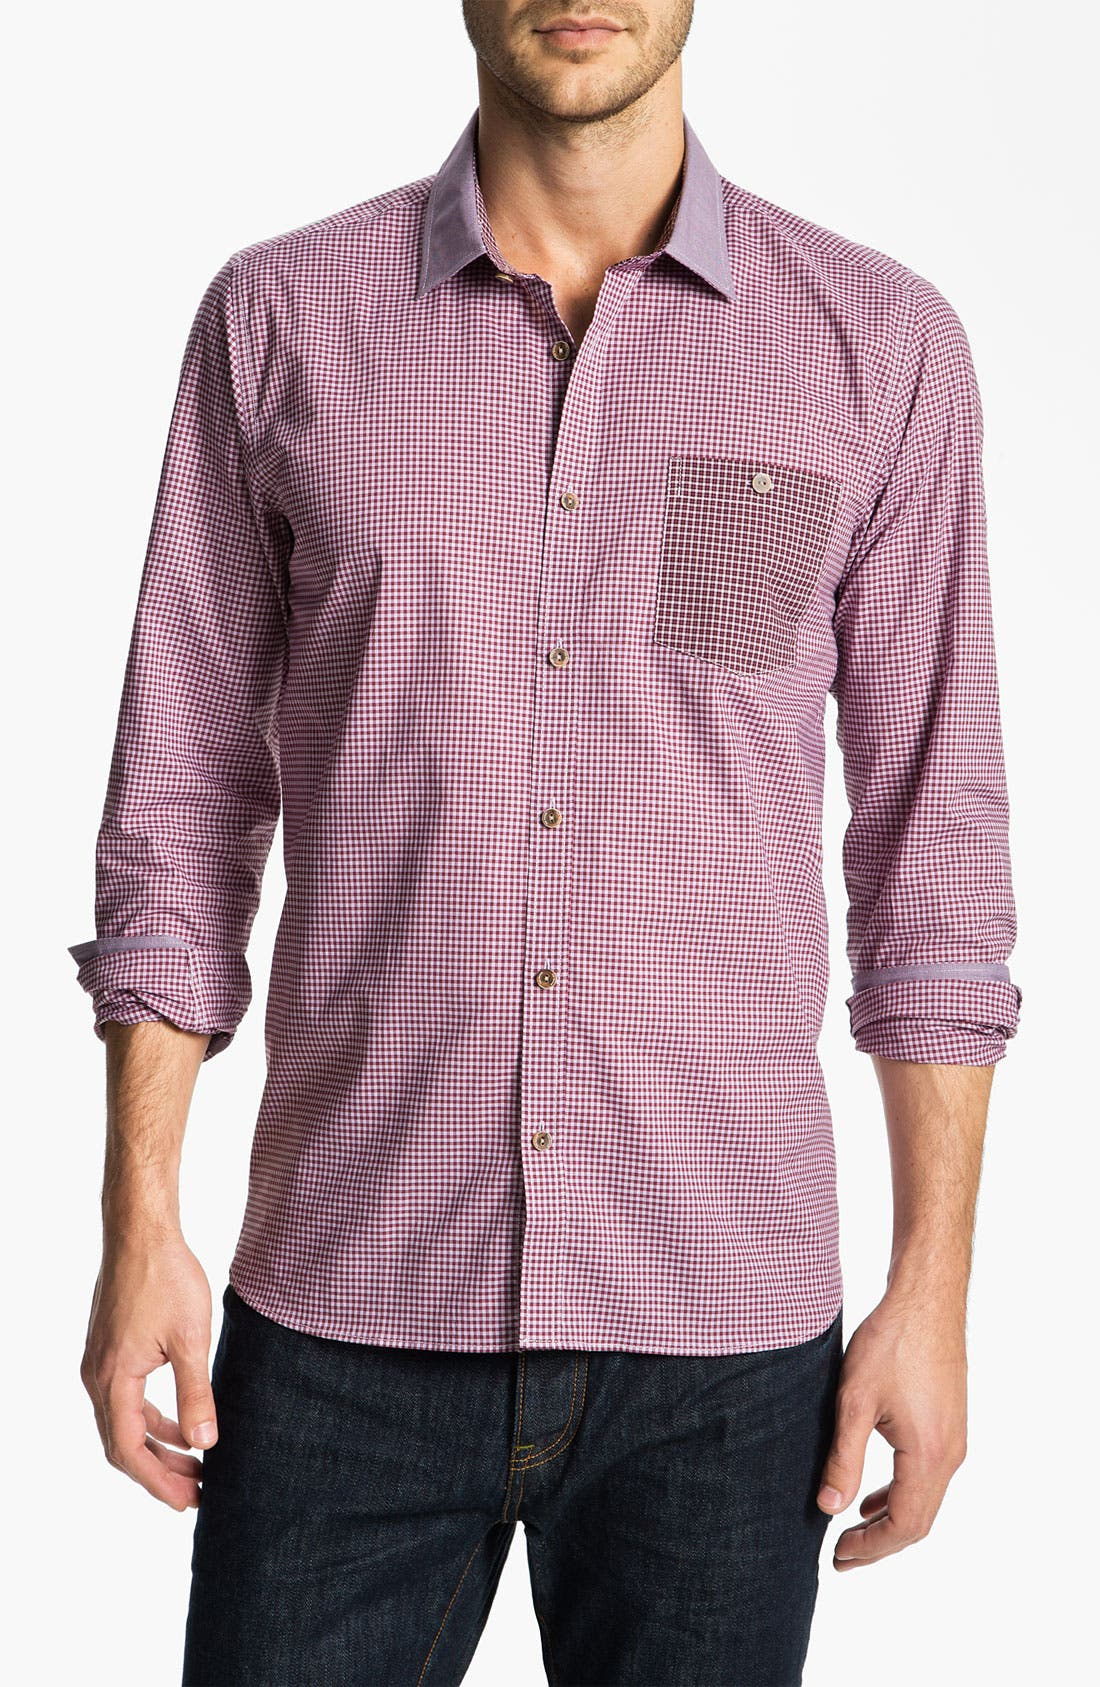 'Livalot' Sport Shirt,                         Main,                         color, Purple